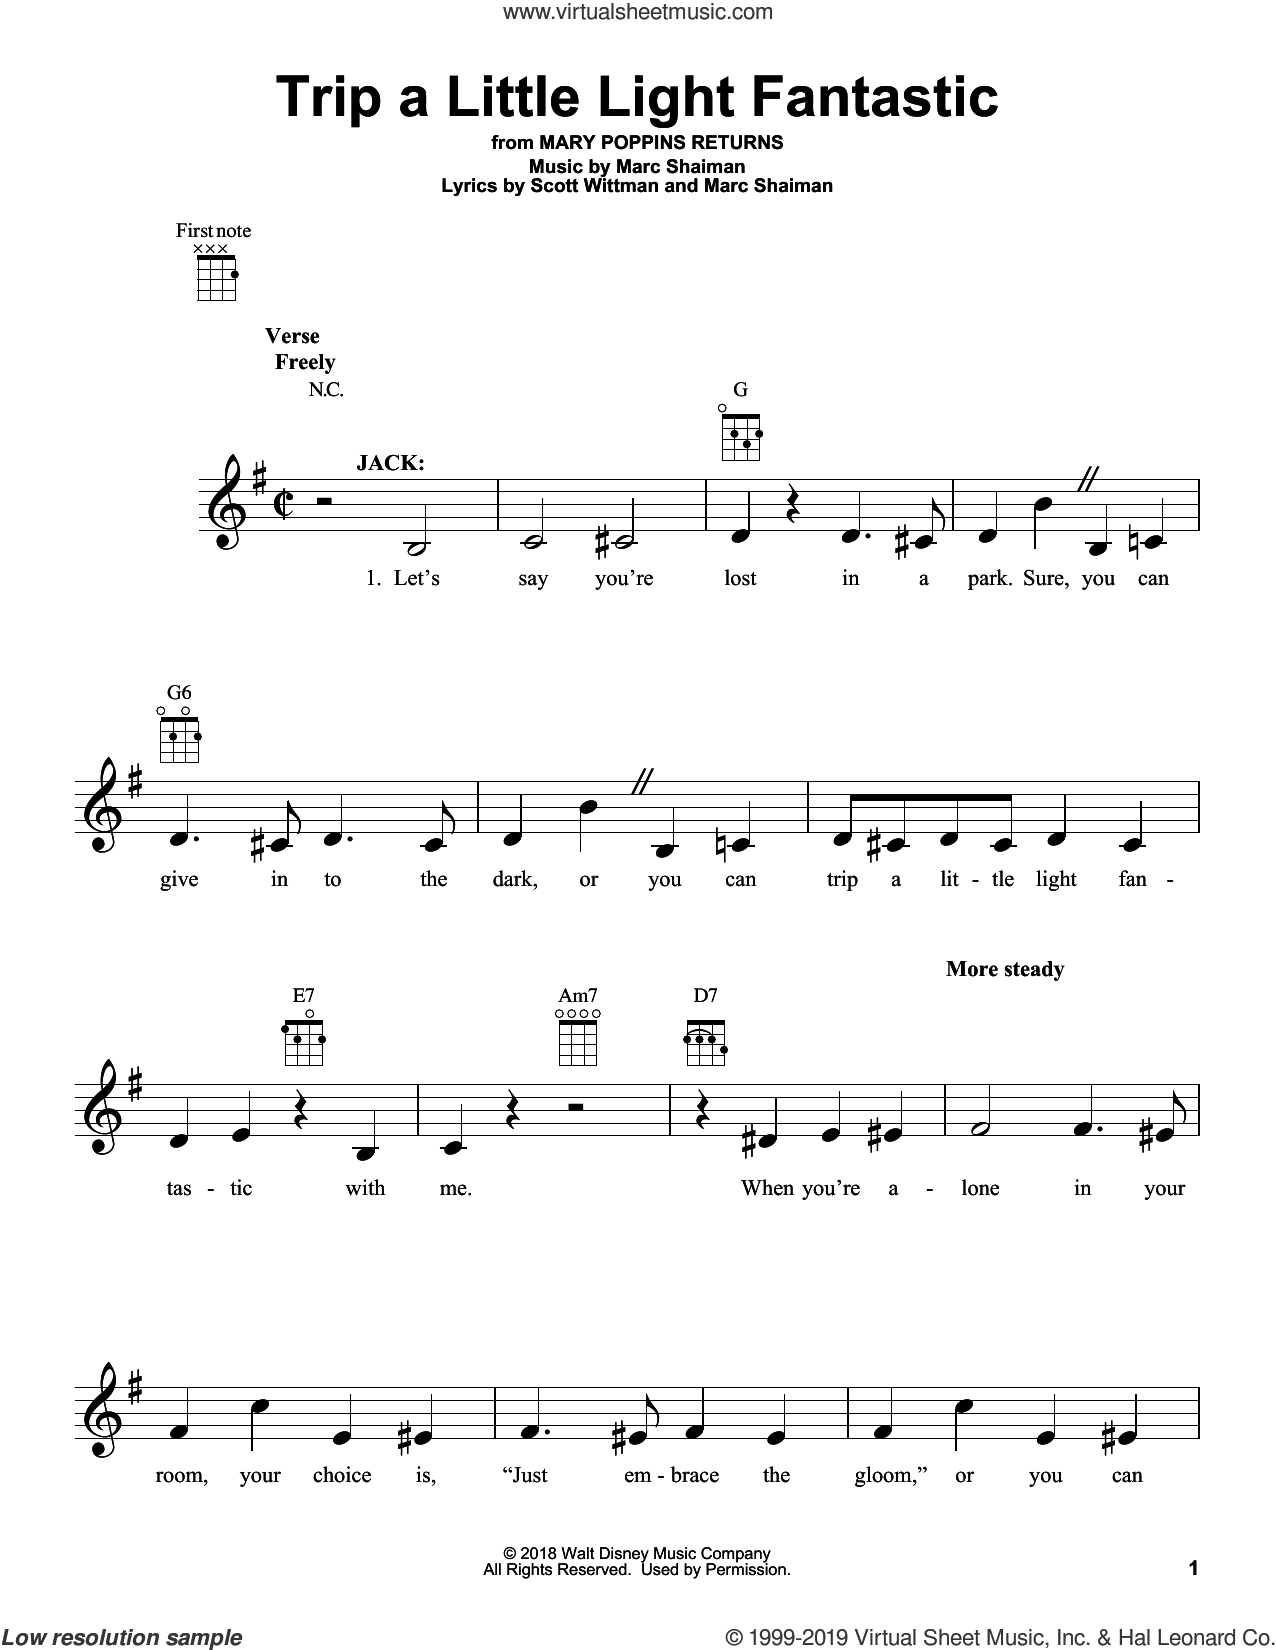 Trip A Little Light Fantastic (from Mary Poppins Returns) sheet music for ukulele by Lin-Manuel Miranda, Marc Shaiman and Scott Wittman, intermediate skill level